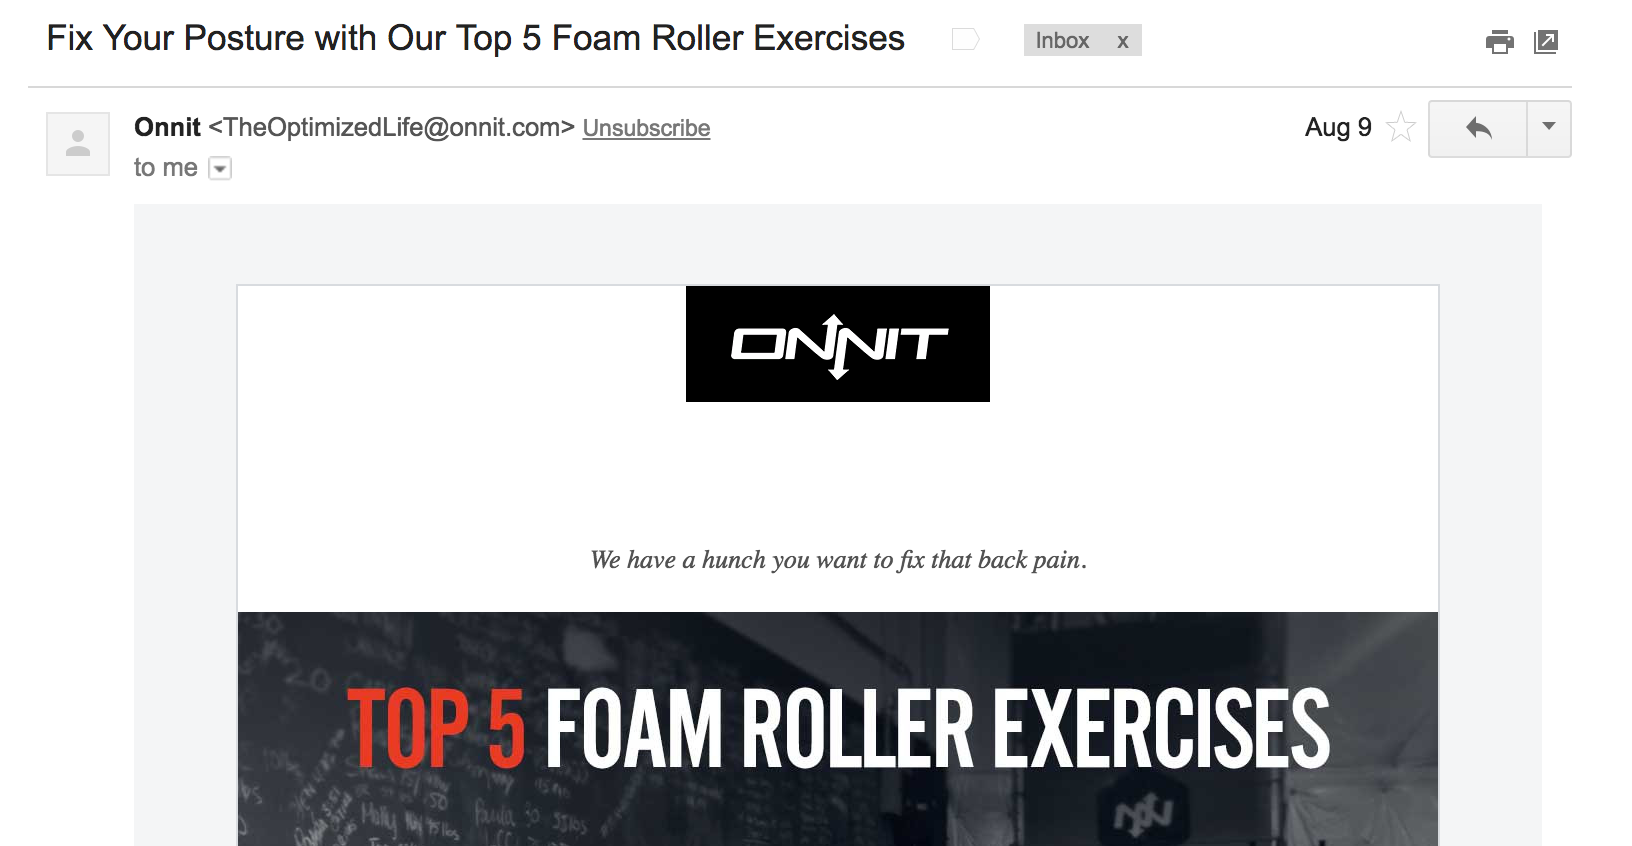 ONNIT email subject example